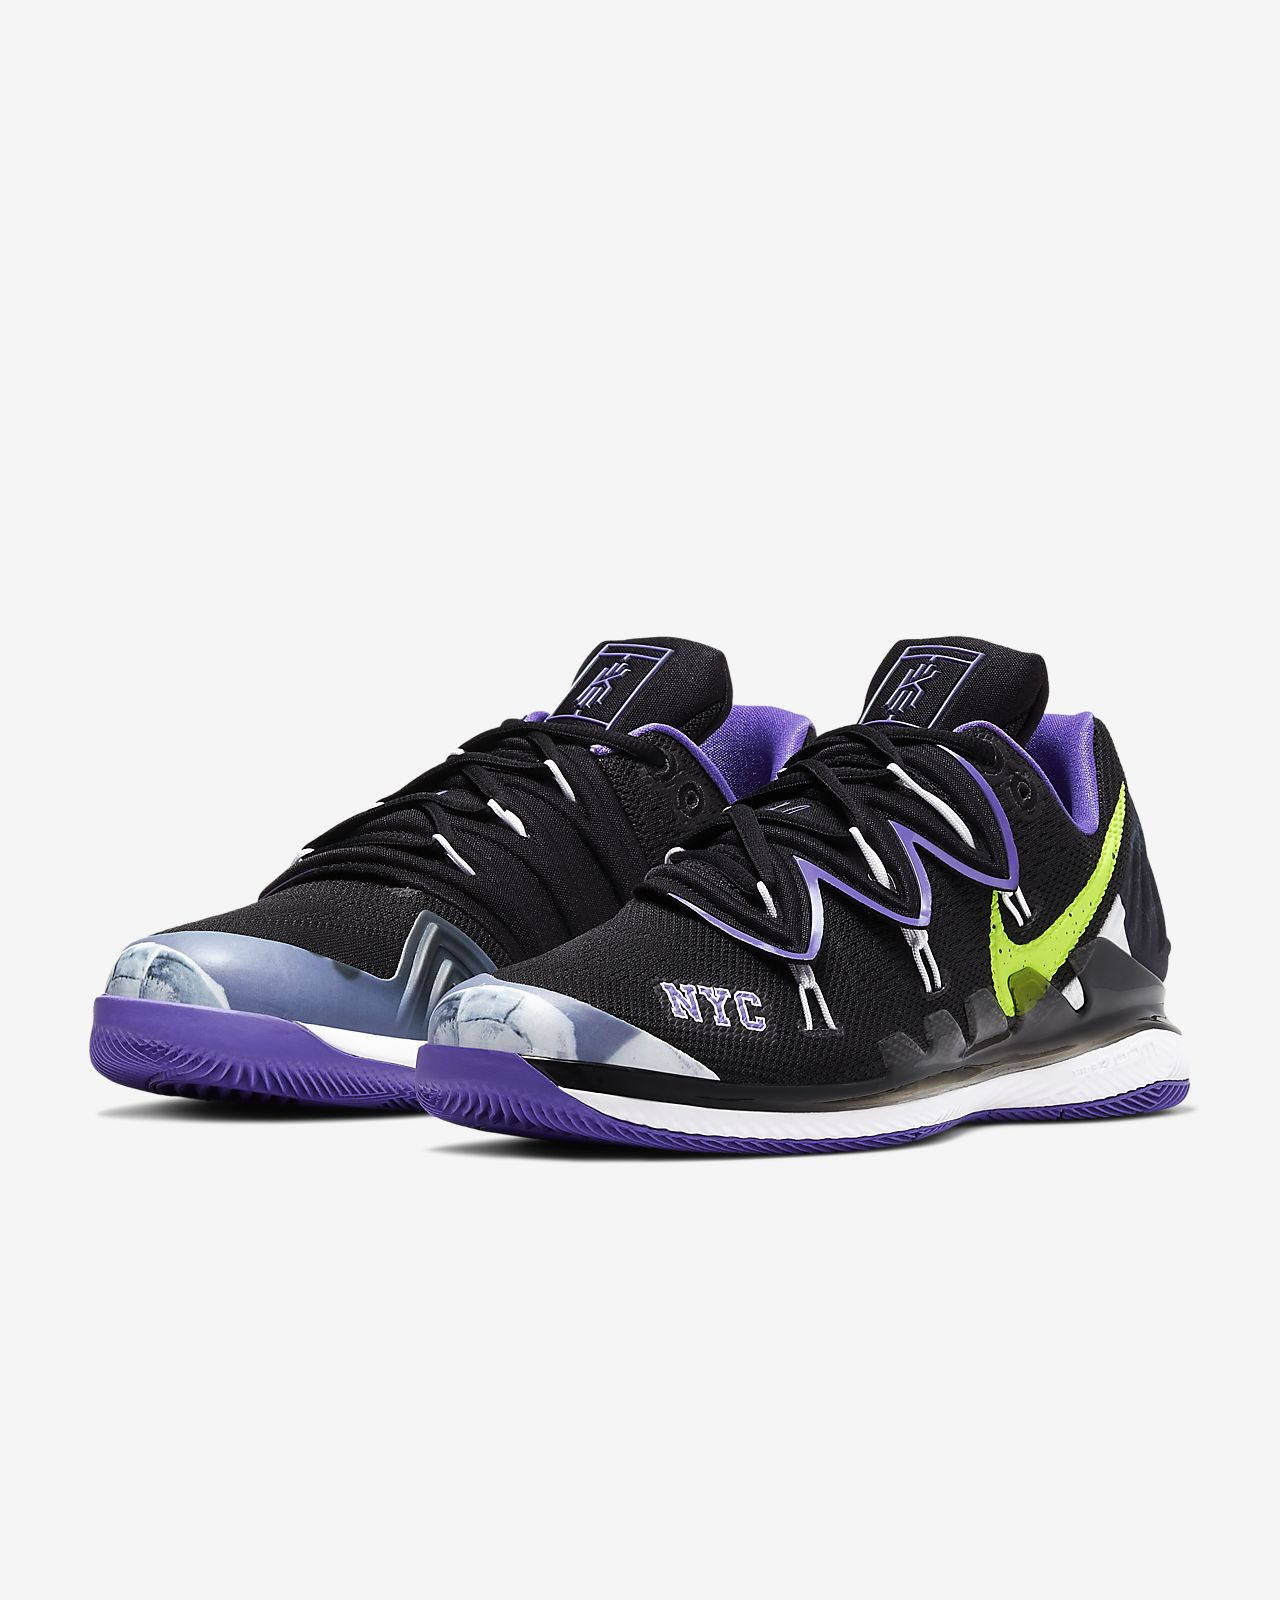 uk cheap sale good service wholesale price NikeCourt Air Zoom Vapor X Kyrie 5 Men's Hard Court Tennis Shoe